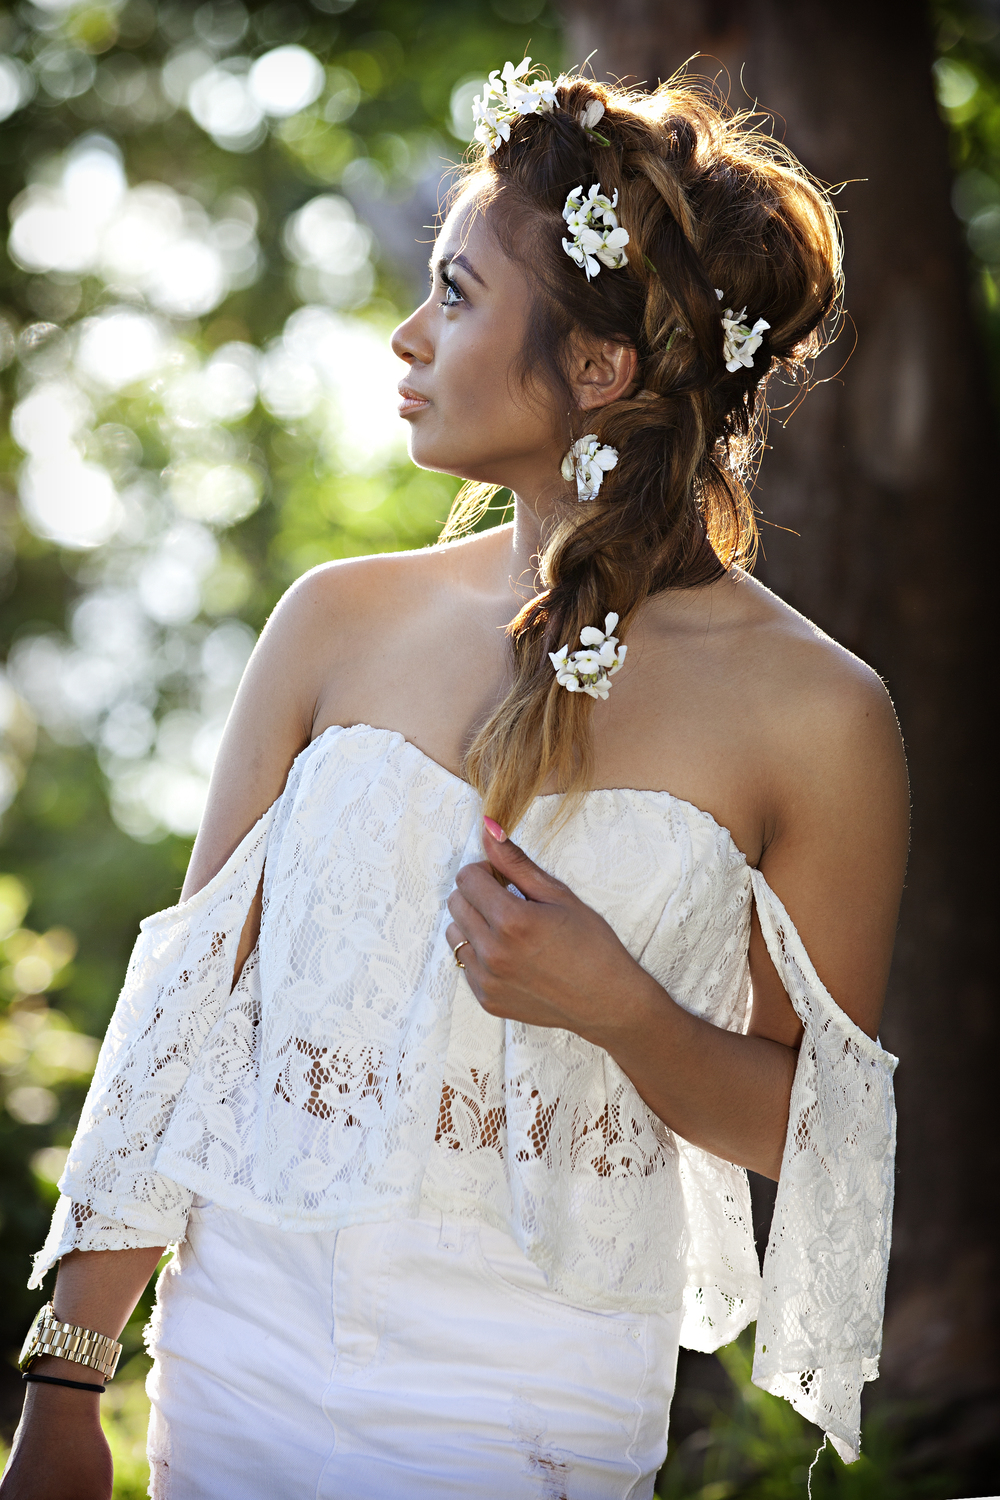 Love this gorgeous boho braid? Be sure to follow Geraldine @styleclassedge for beauty tips